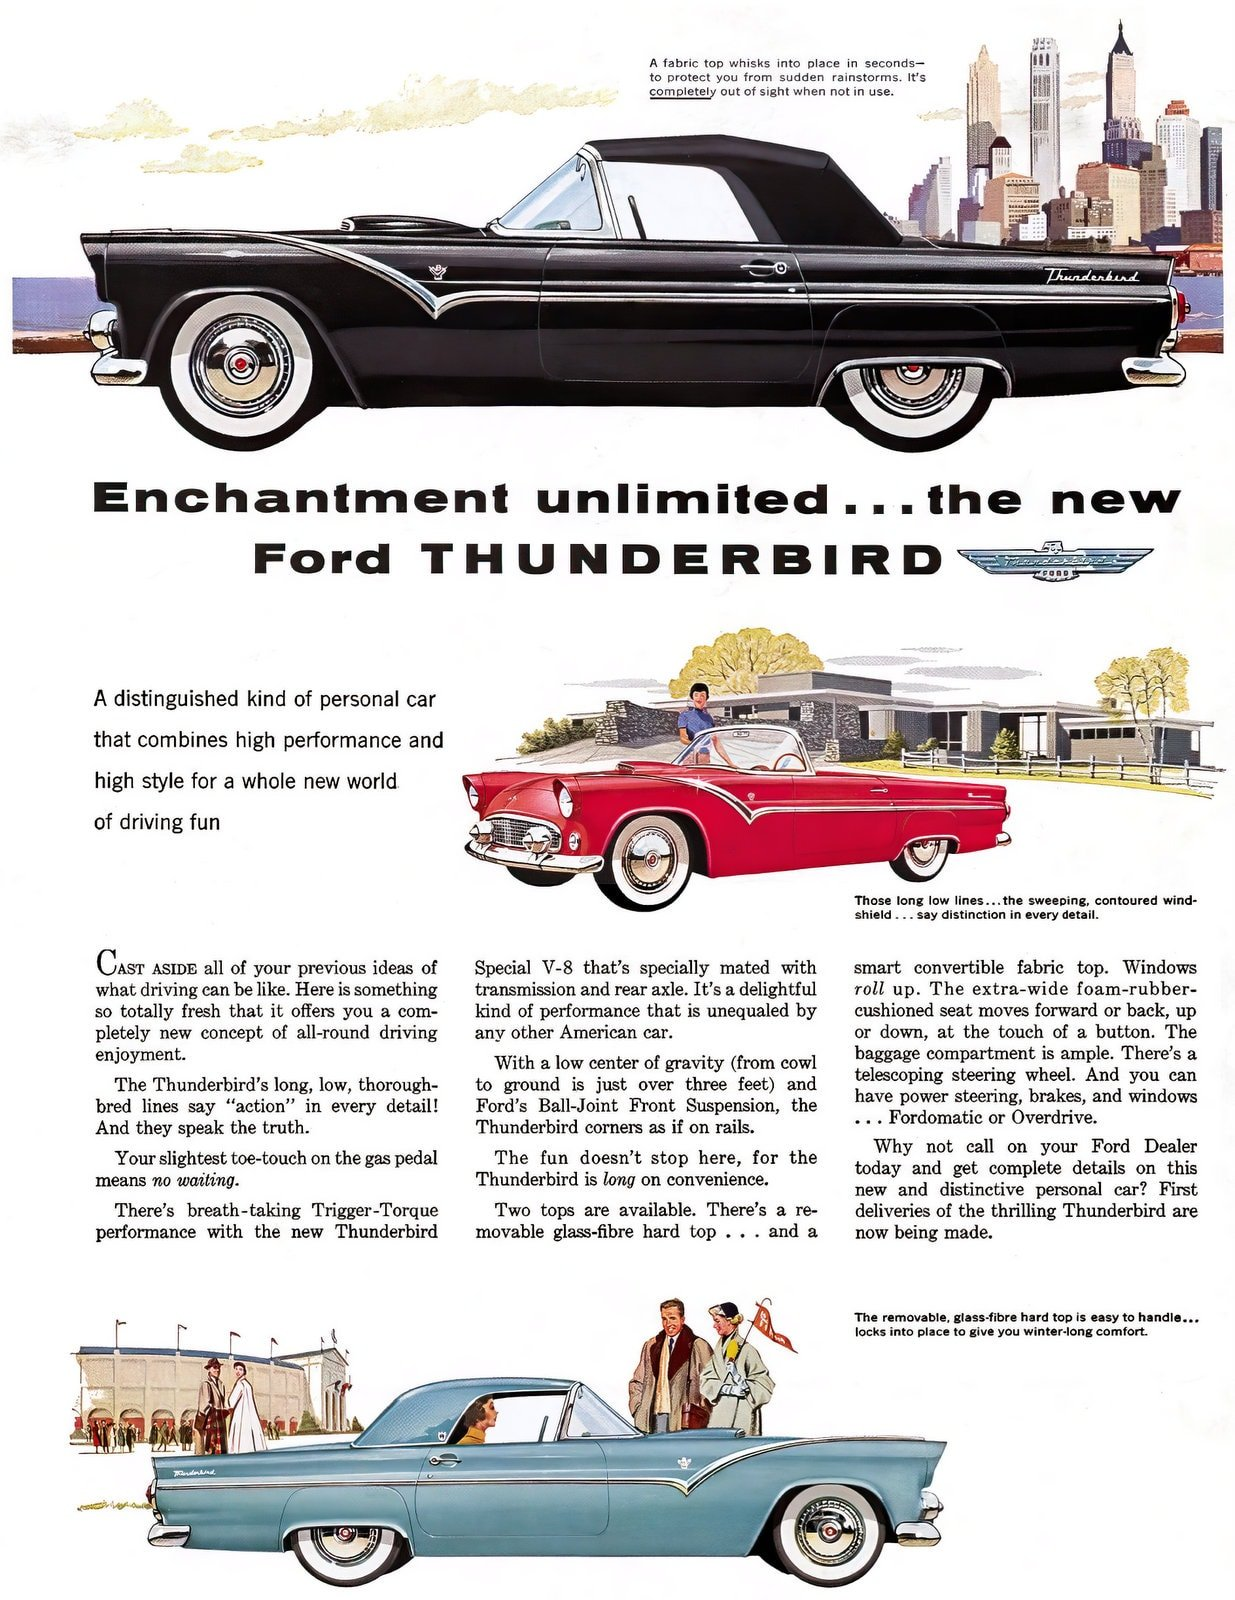 1955 Ford Thunderbird (1954 debut)